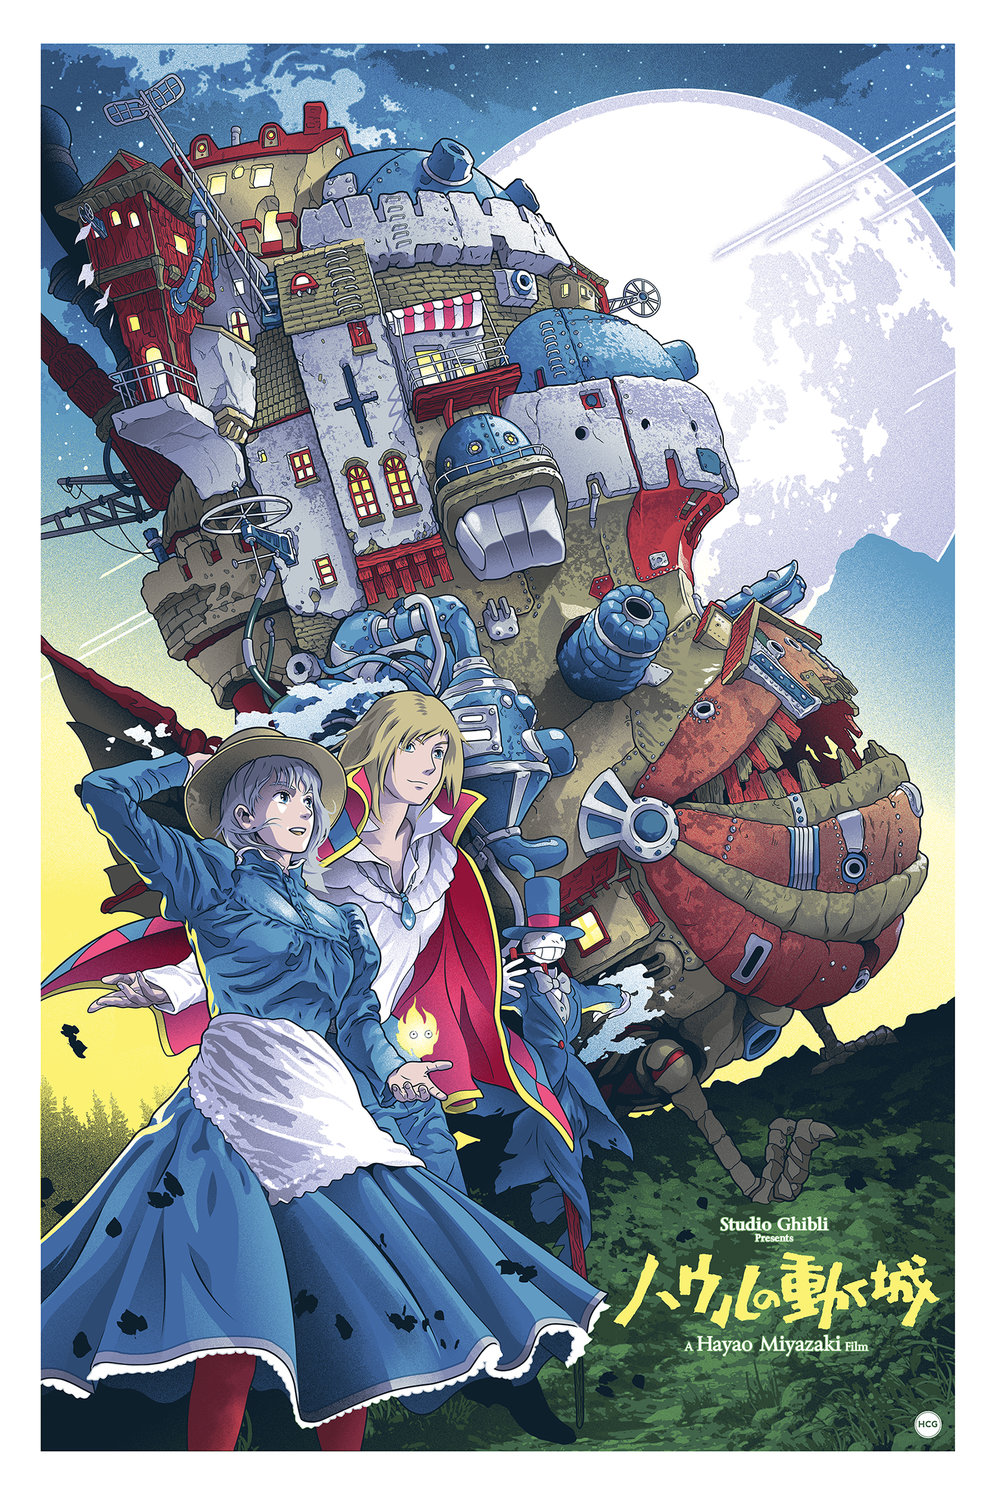 Howl's Moving Castle iaccarino web.jpg